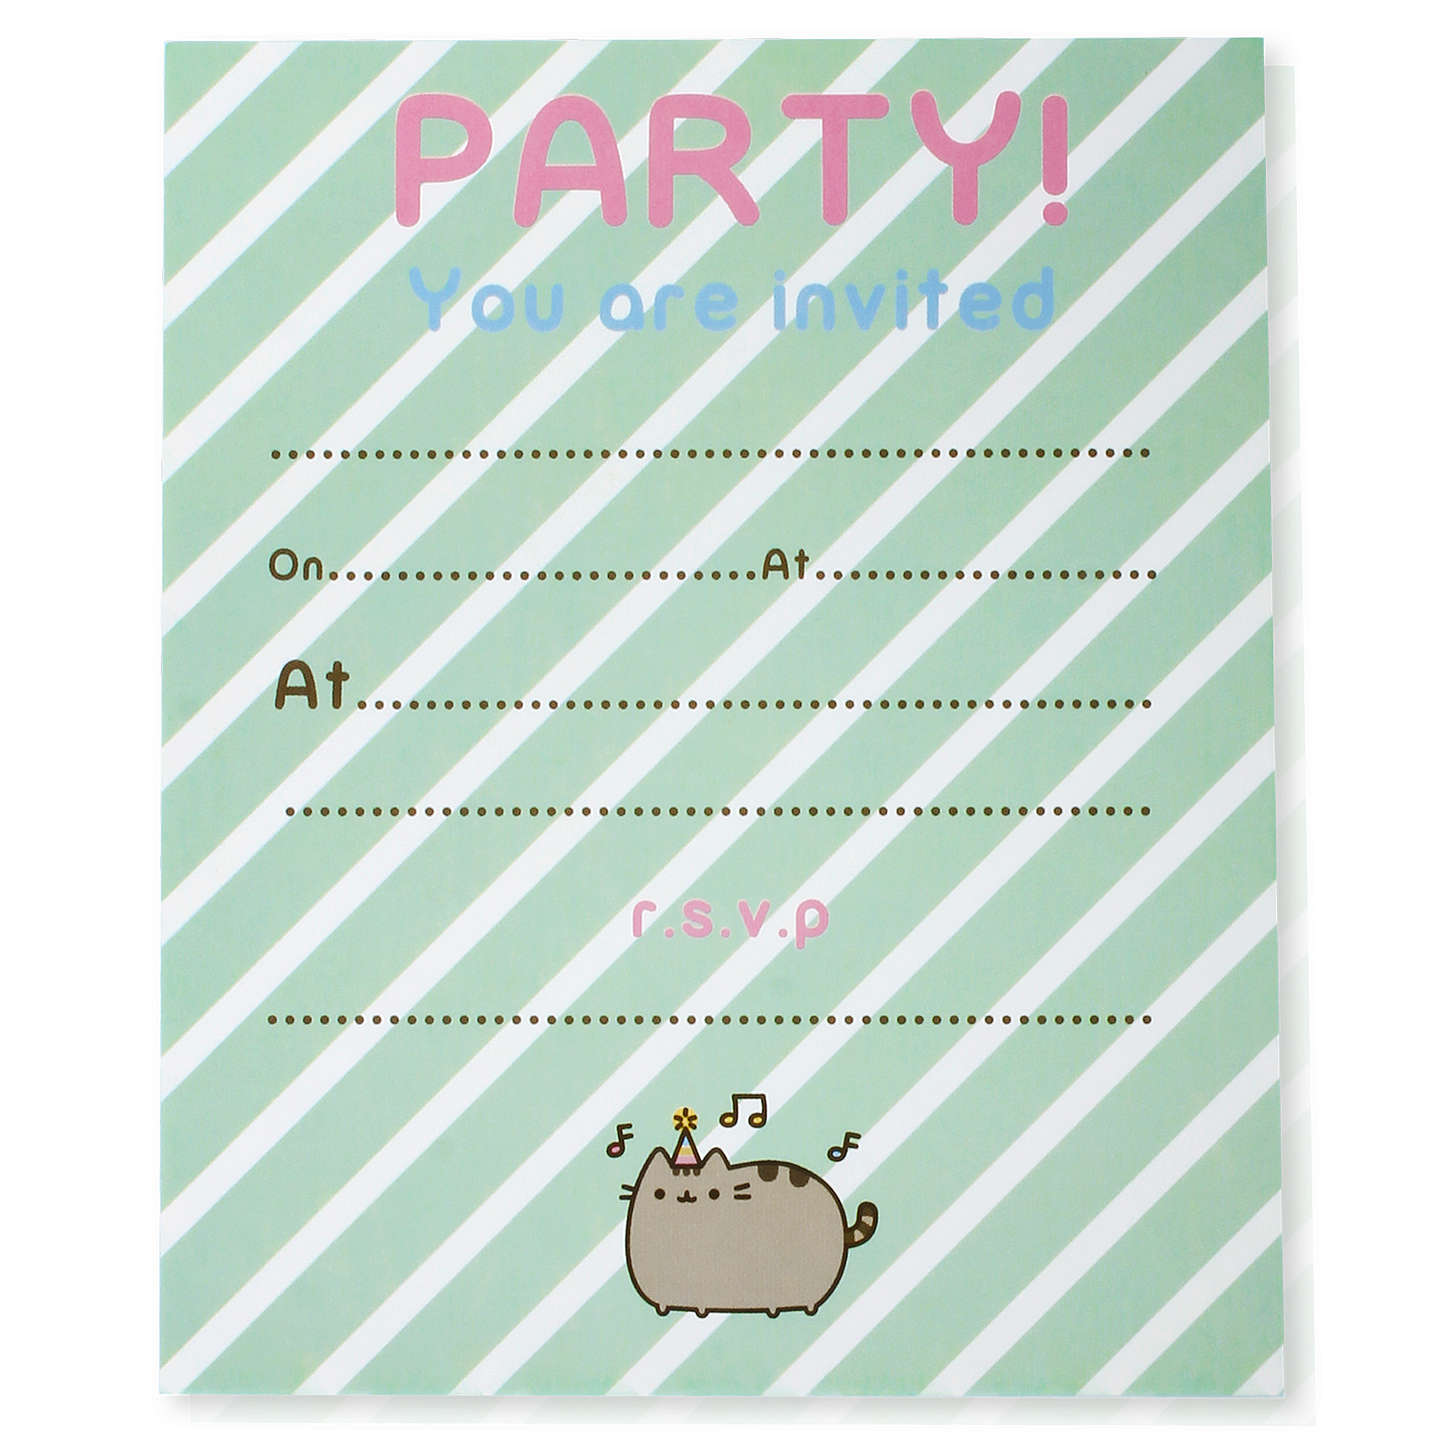 Pusheen party invitations pack of 8 at john lewis buypusheen party invitations pack of 8 online at johnlewis stopboris Image collections